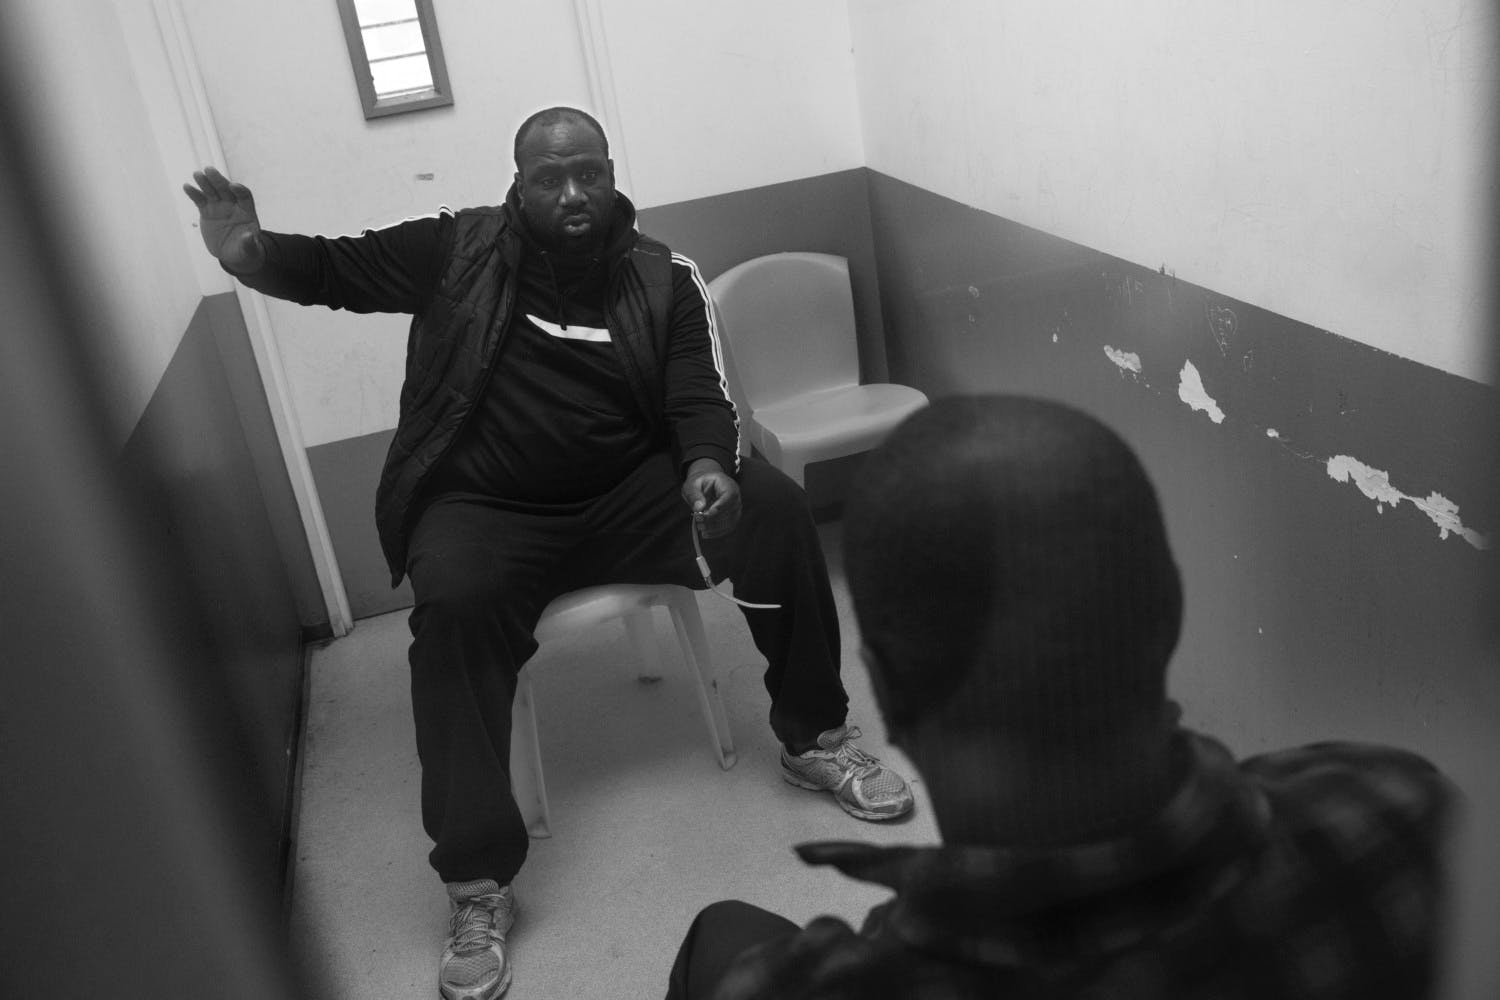 PAOLO PELLEGRIN: INSIDE A FRENCH PRISON